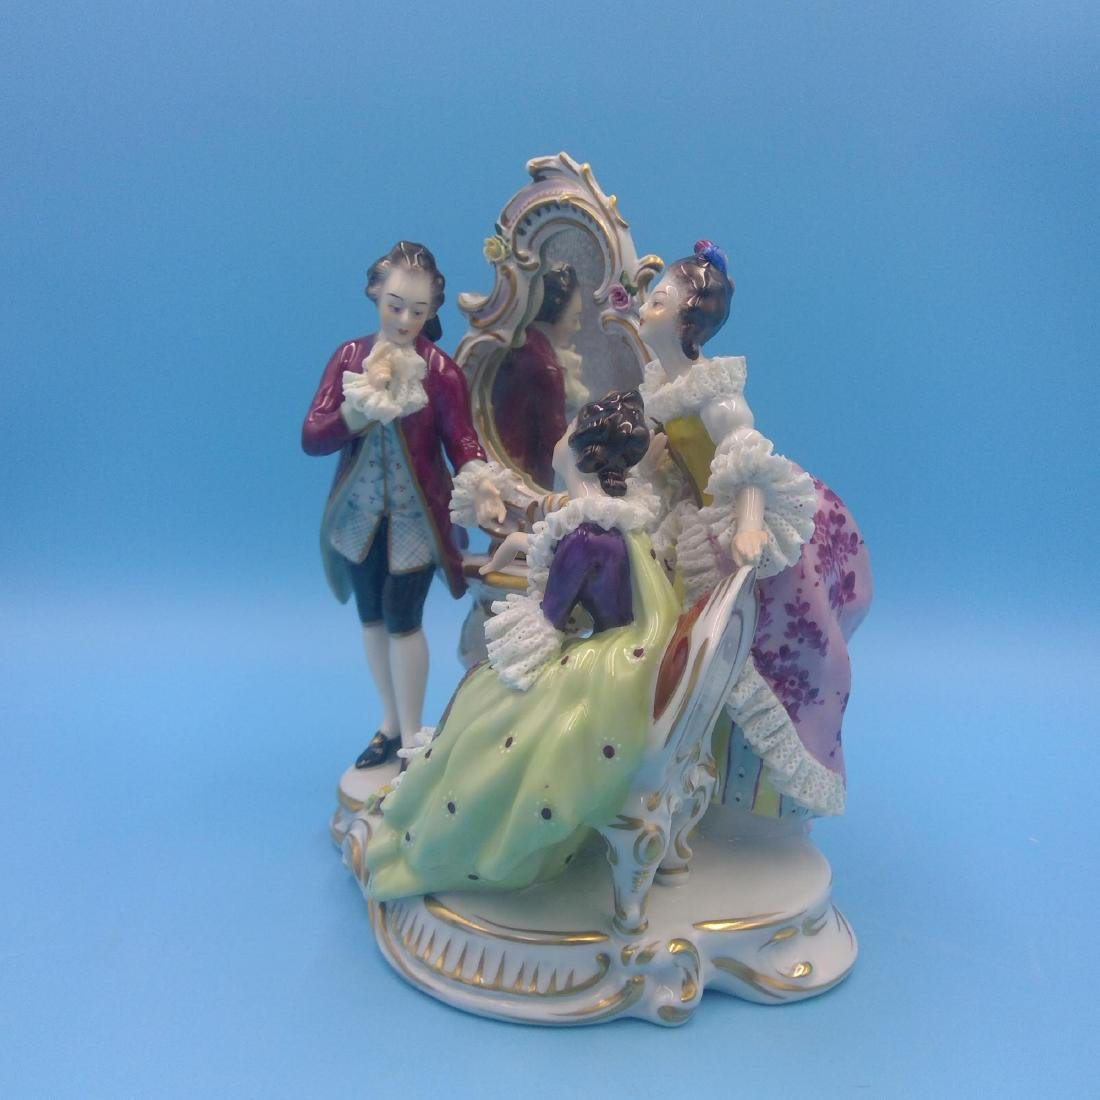 VOLKSTEDT 18thC GERMAN PORCELAIN GROUP FIGURINE - 2